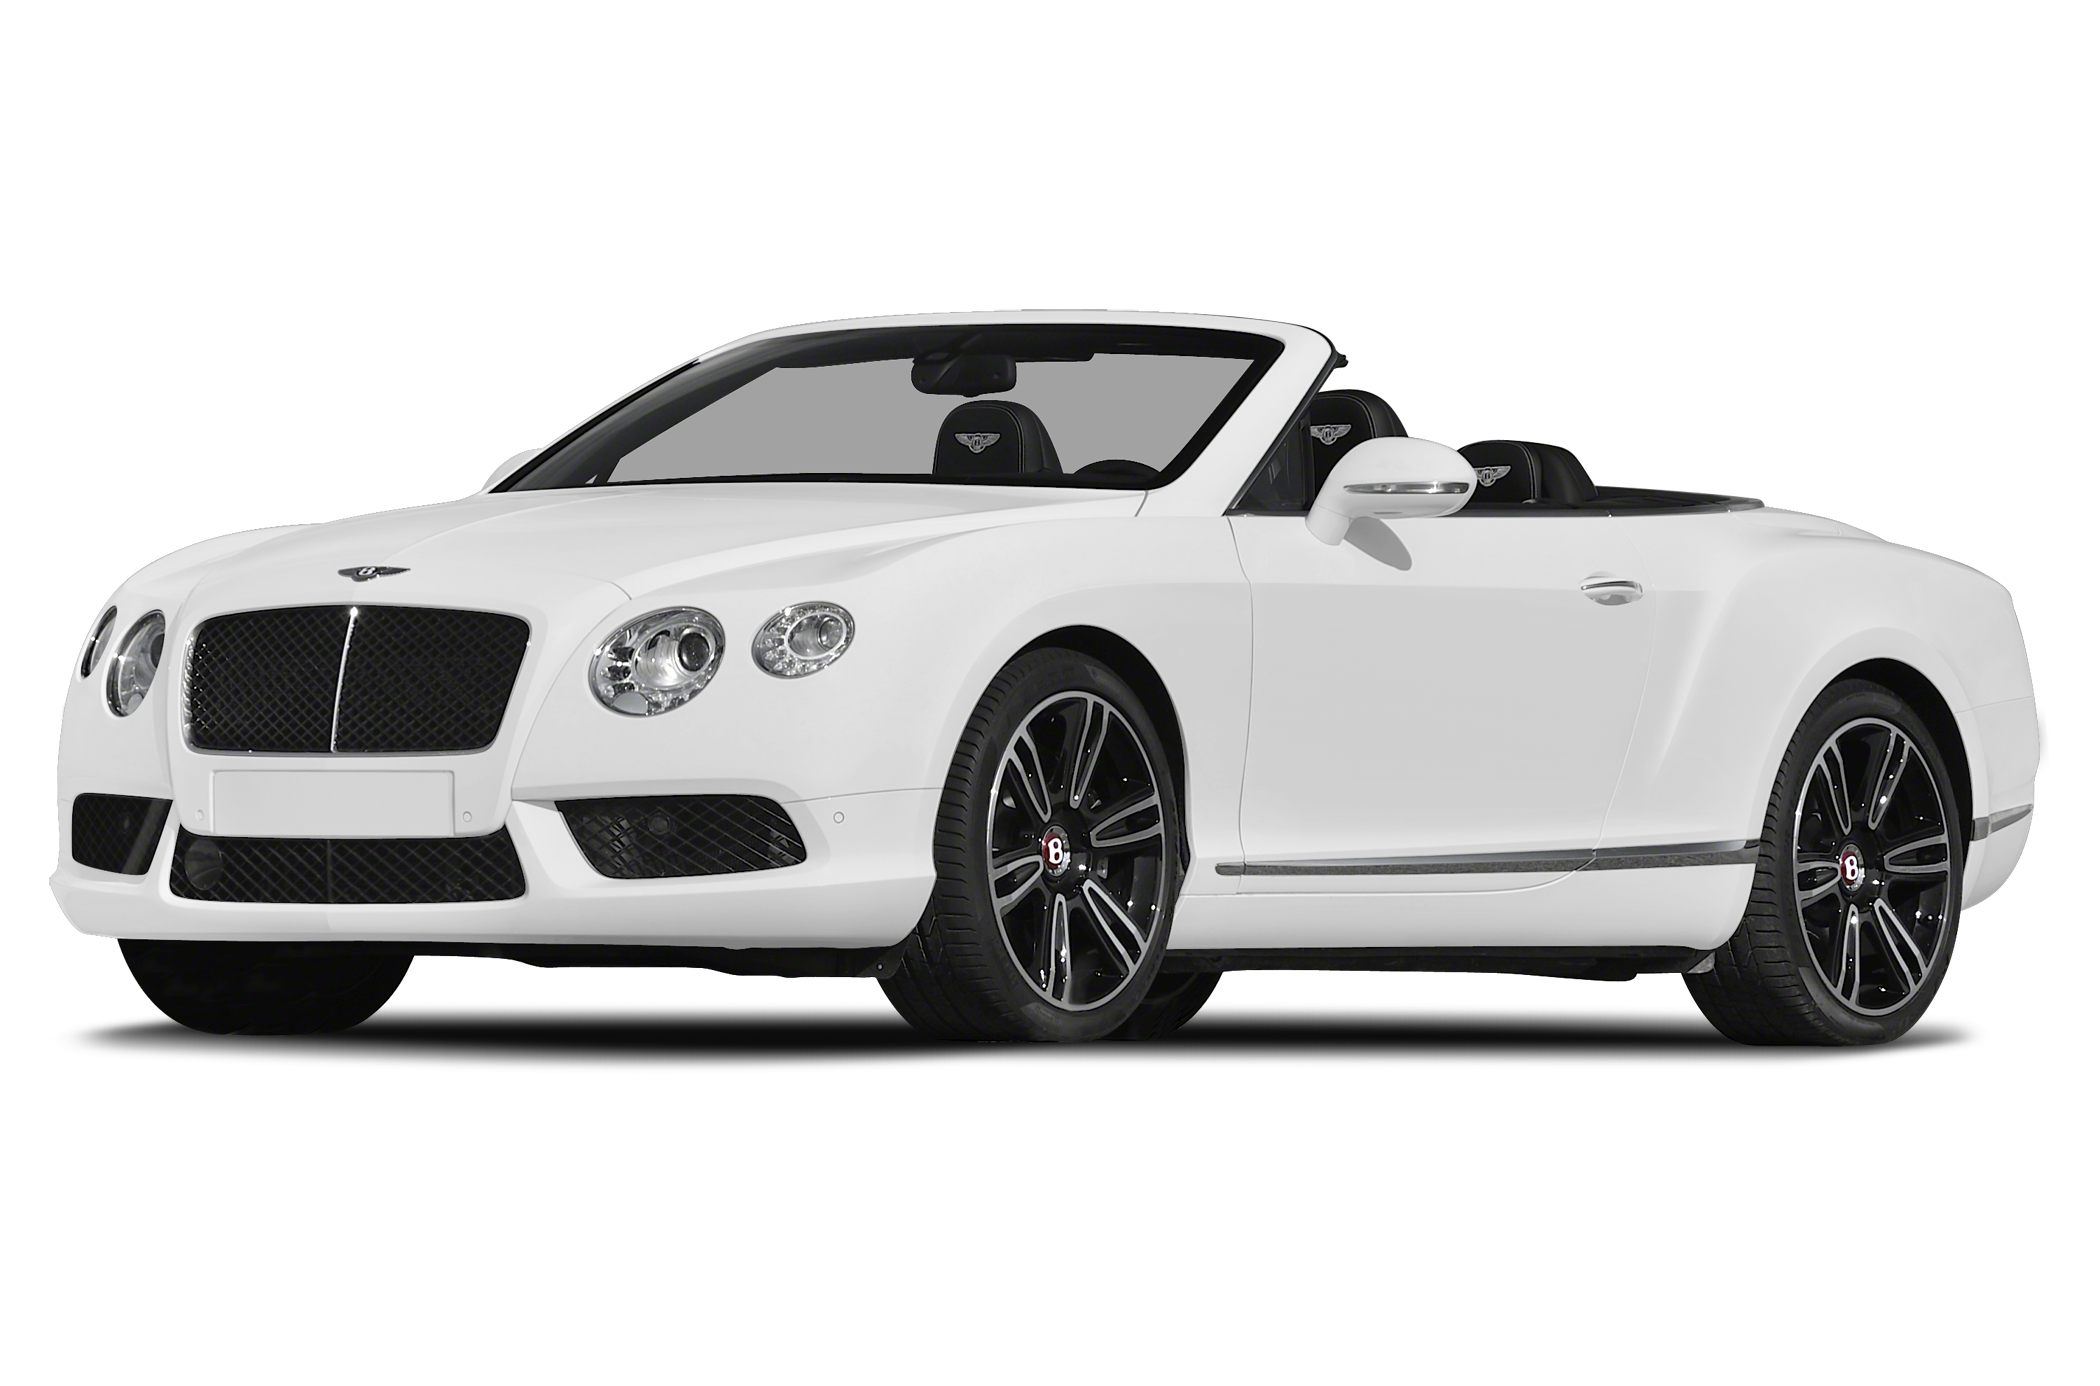 2015 Bentley Continental GTC V8 Convertible for sale in Miami for $233,445 with 19 miles